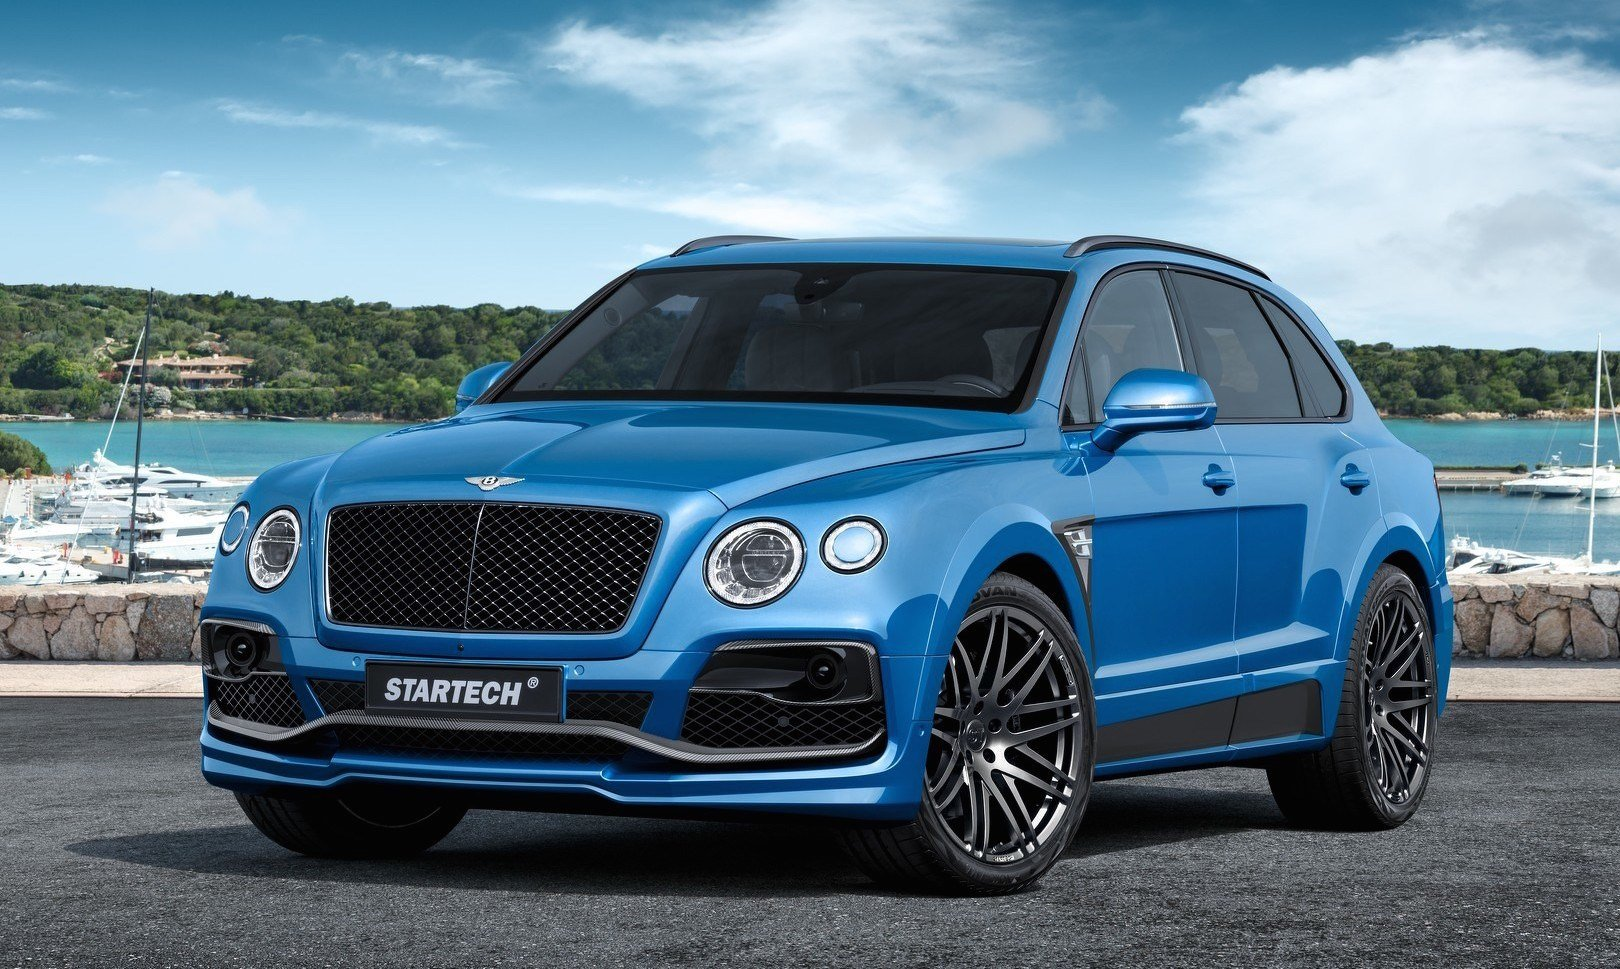 New Startech Bentley Bentayga Shows Potential Performancedrive On This Month